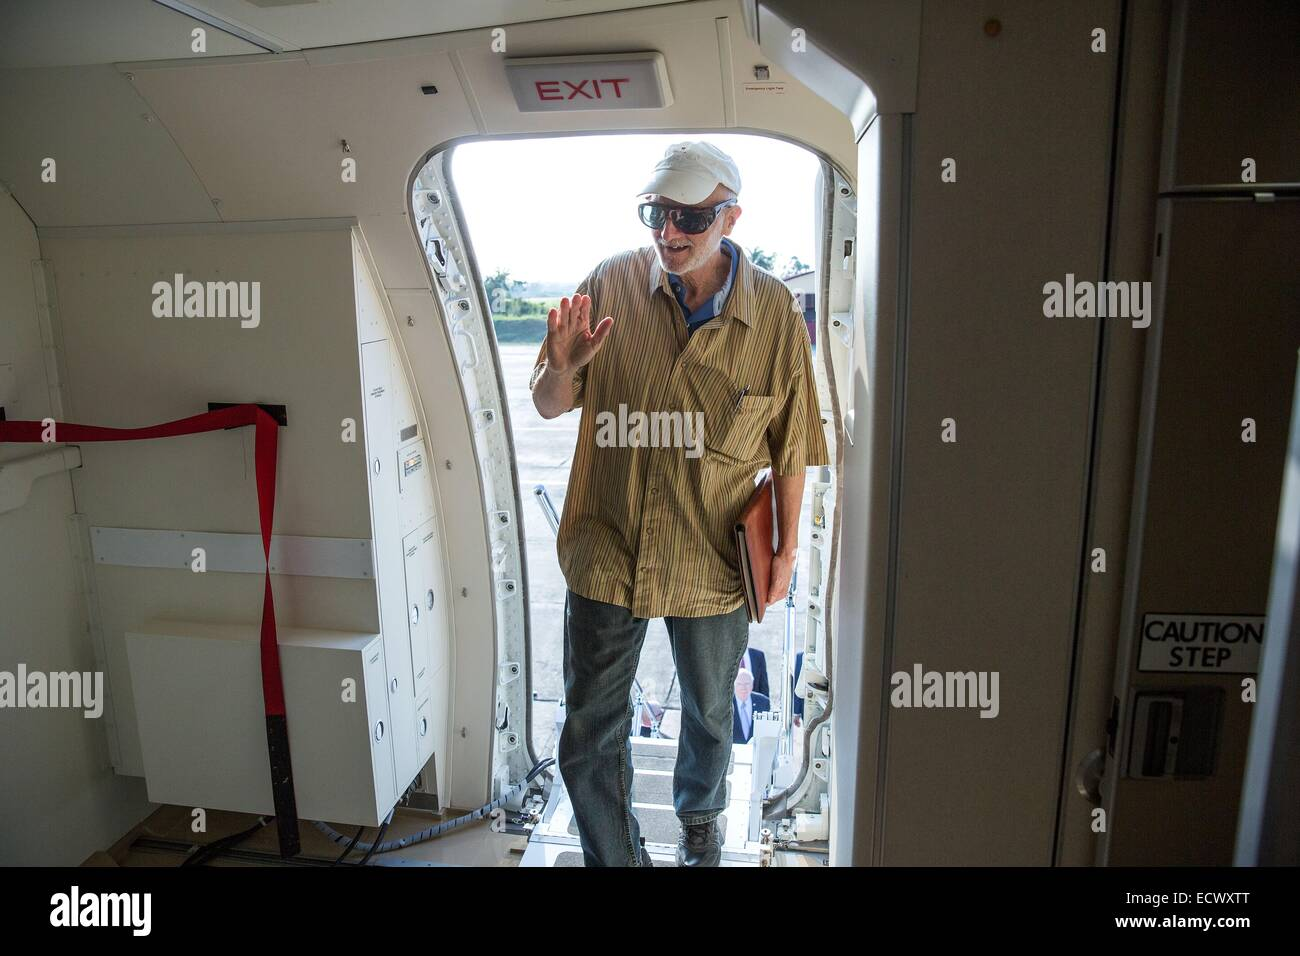 USAID contractor Alan Gross, imprisoned in Cuba for five years, waves as he boards a government airplane following - Stock Image